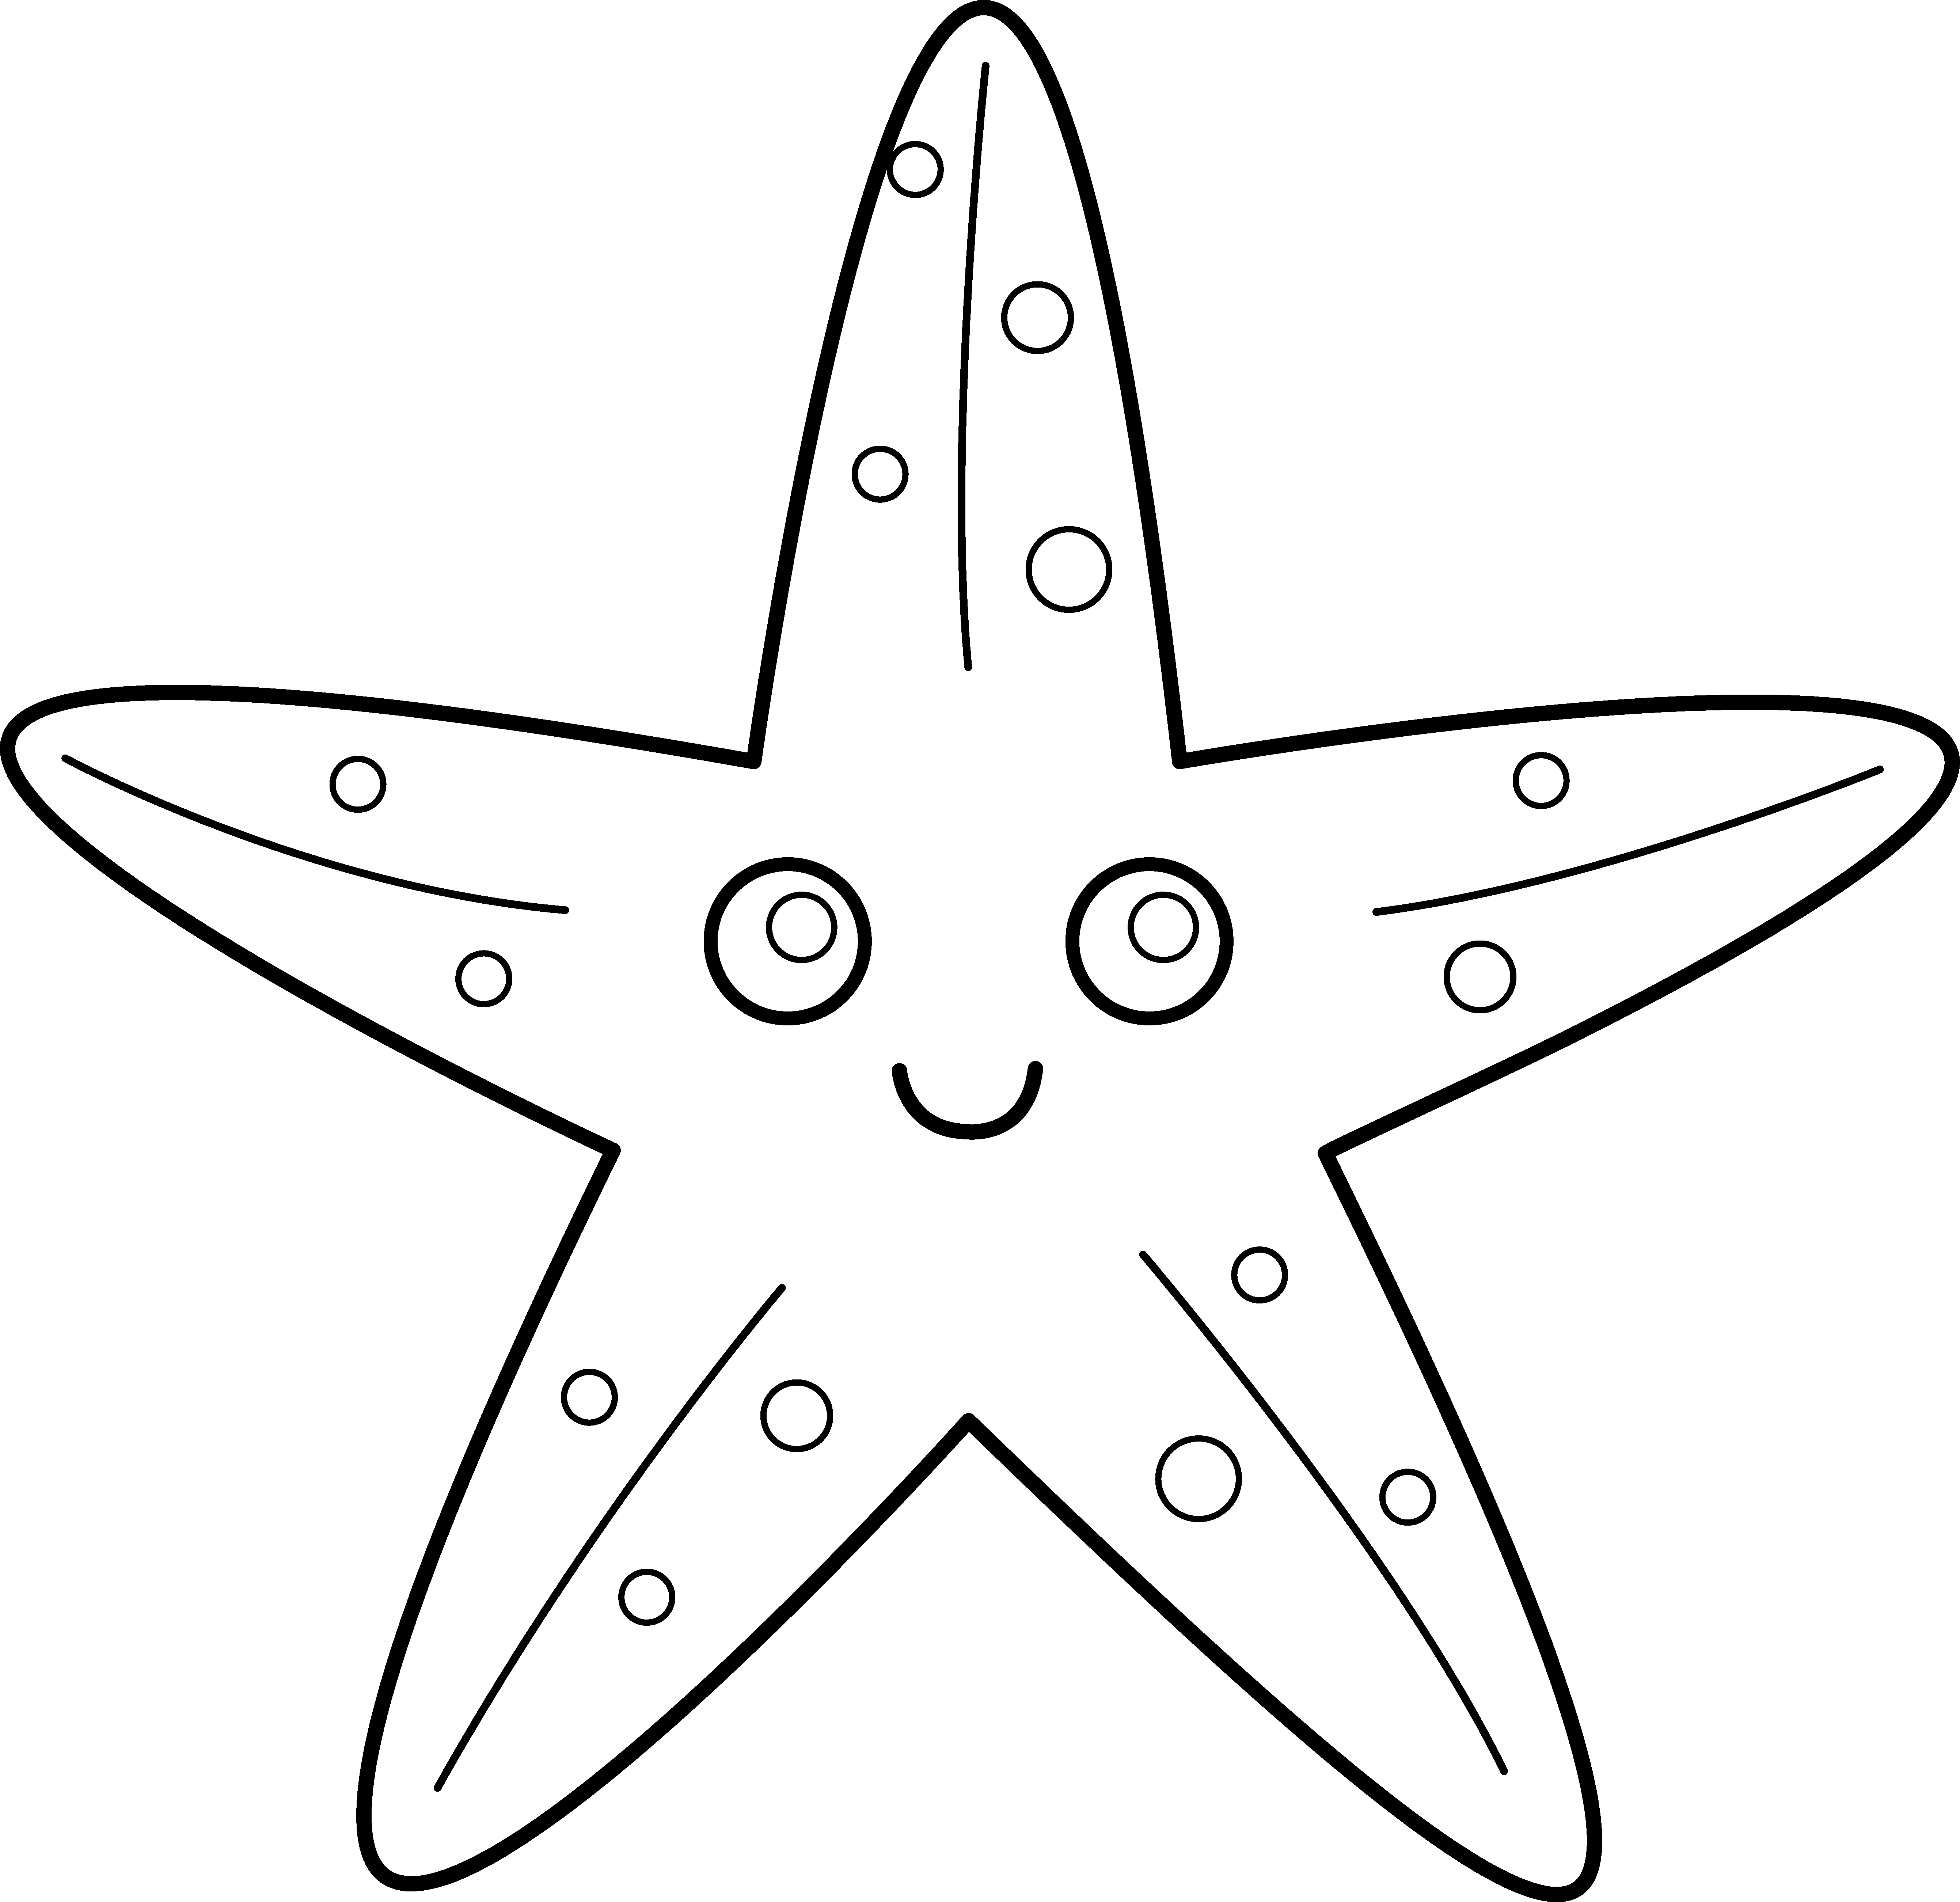 Sand sun and starfish picture clipart clip art transparent Starfish for applique | beach camp | Pinterest | Starfish, Sewing ... clip art transparent